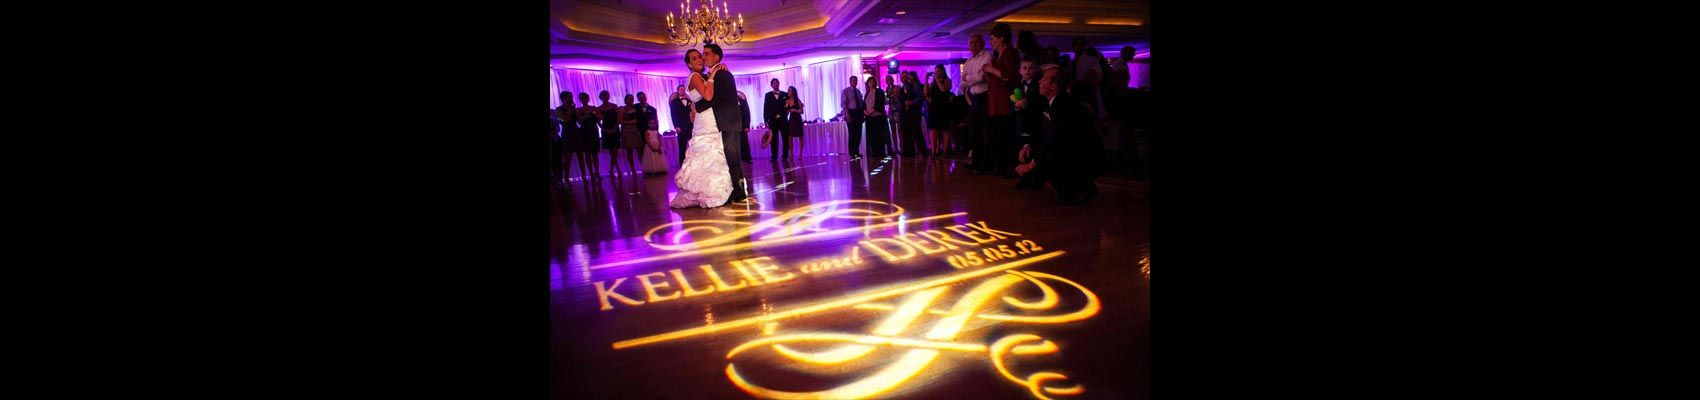 Buckeye Sounds Is The Columbus Wedding Dj That Does Things A Bit Different From Most Other Djs That You W Wedding Dj Uplighting Wedding Custom Wedding Monogram